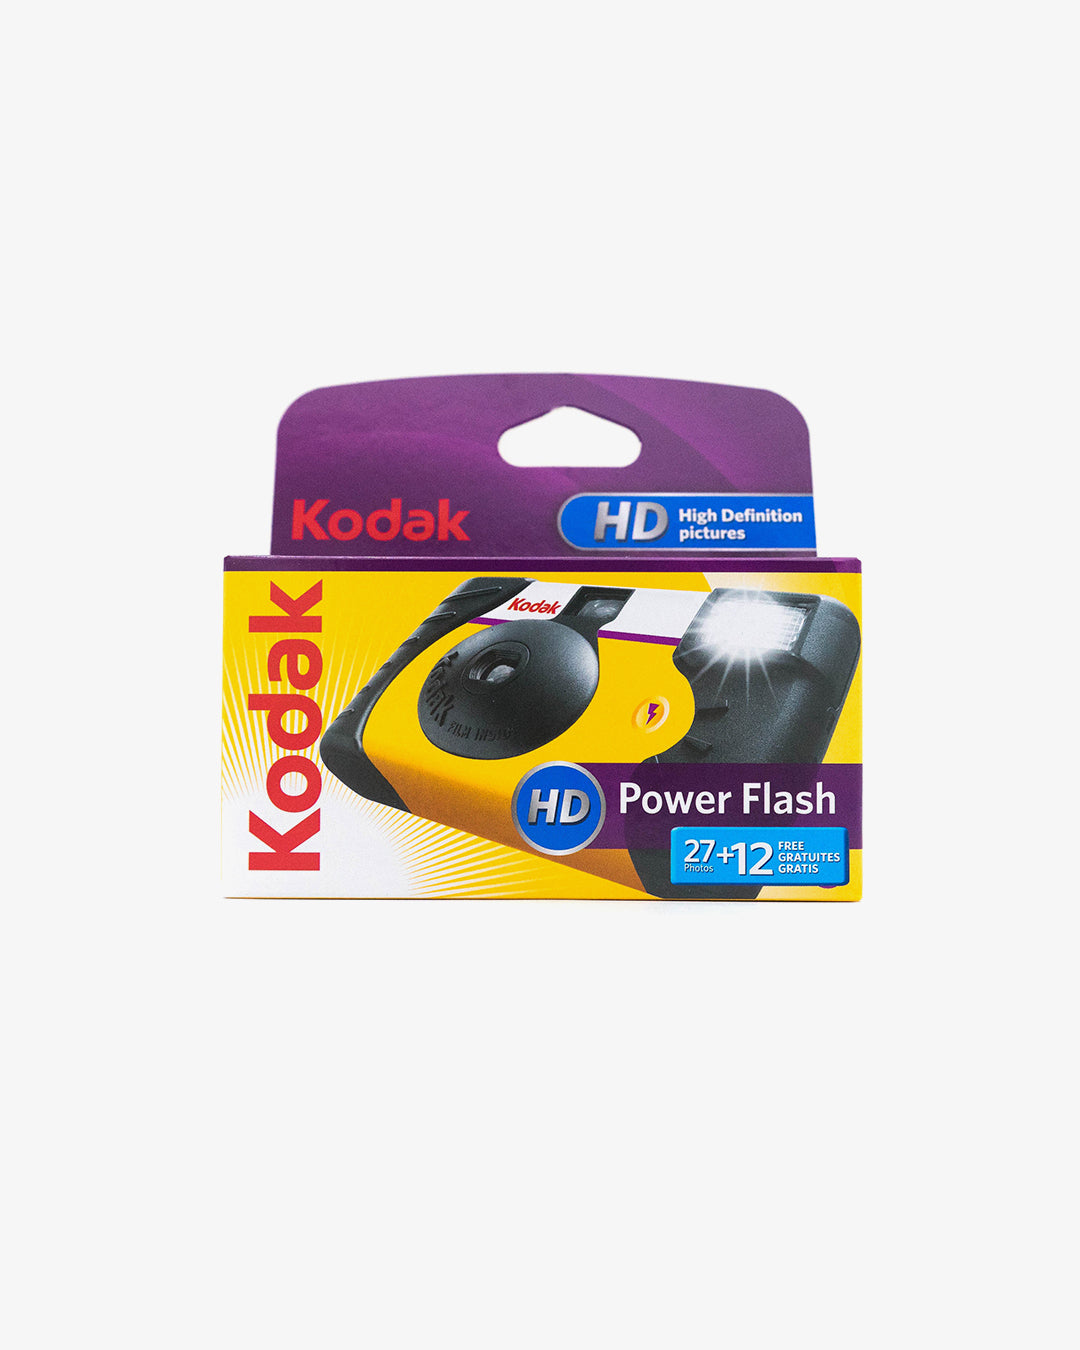 Kodak HD Power Flash Disposable Camera (35mm, 39 exp.)